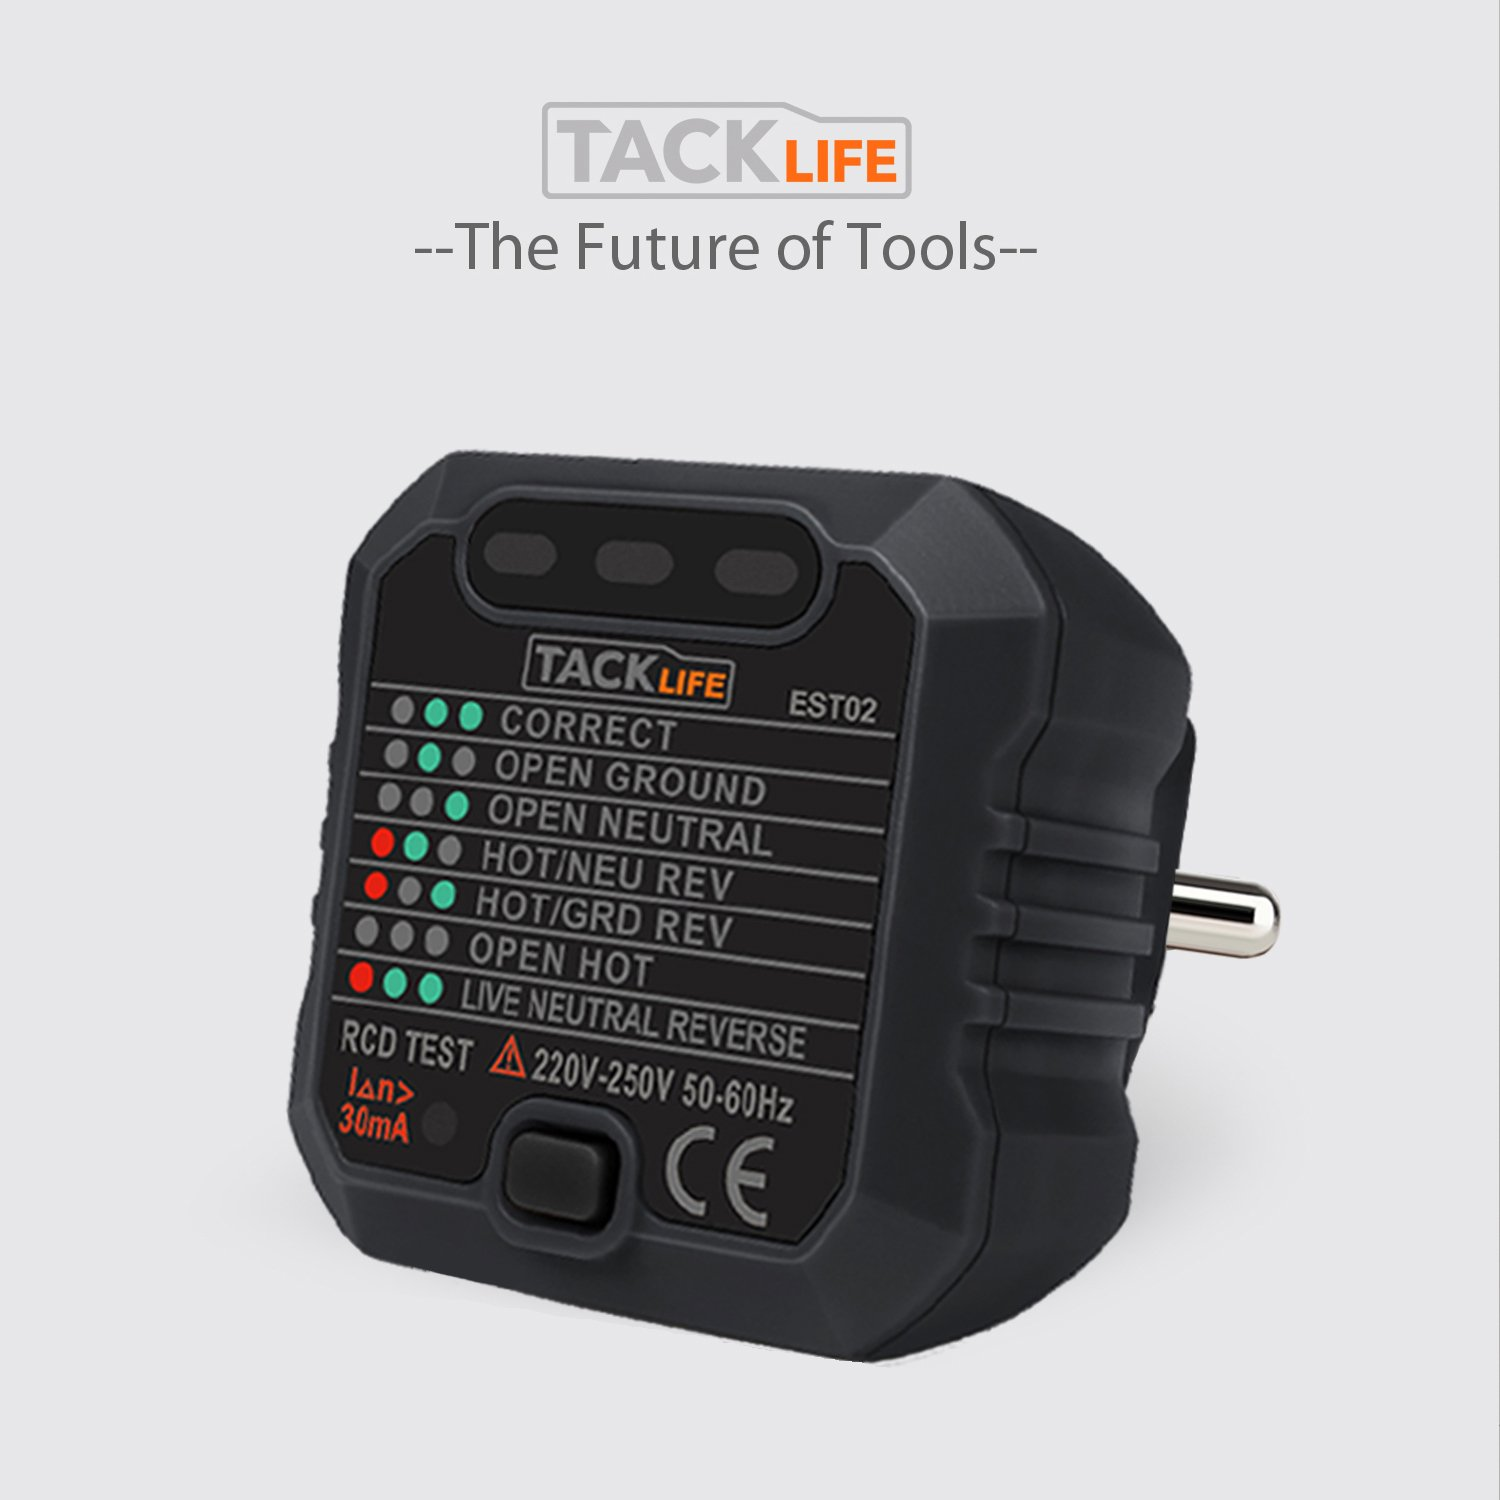 Meter Tester 1 Piece Neutral and Earth Polarity Tacklife EST02/Advanced Socket and Wiring Current Tester for Electrical Circuits